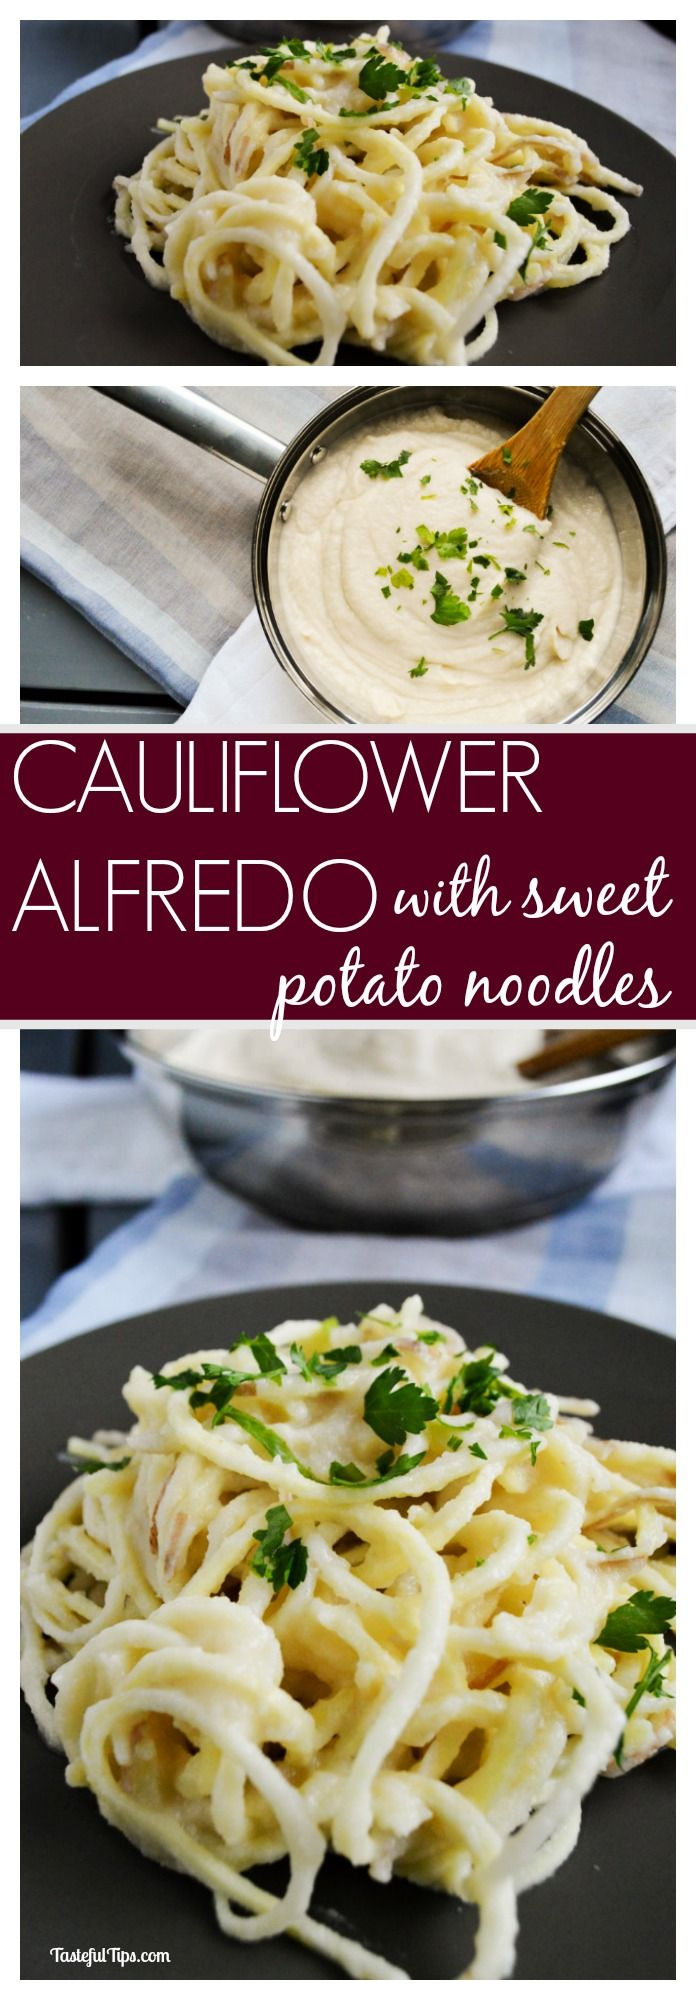 Garlic Cauliflower Alfredo with Sweet Potato Noodles - vegan, dairy free, gluten free, and delicious!